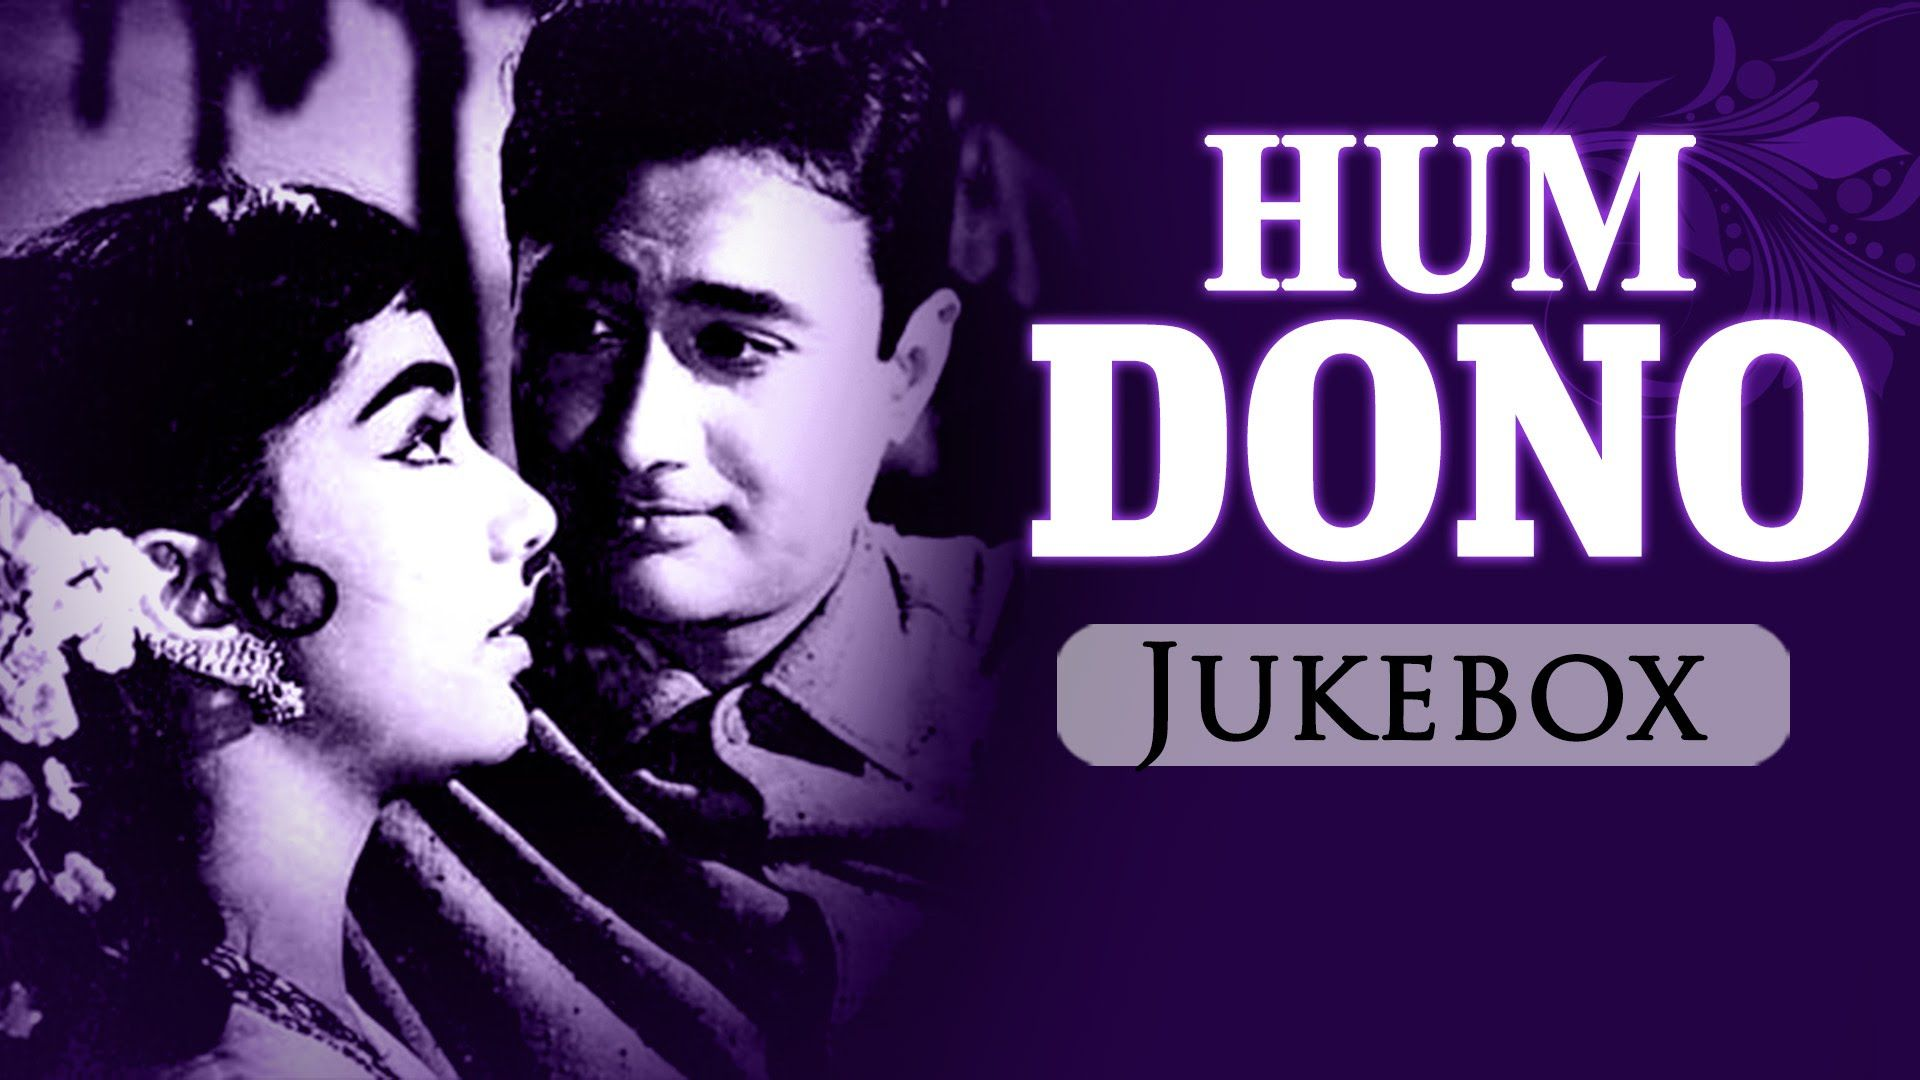 All Songs of Hum Dono - Jukebox - Dev Anand & Sadhana - Evergreen Bollyw.